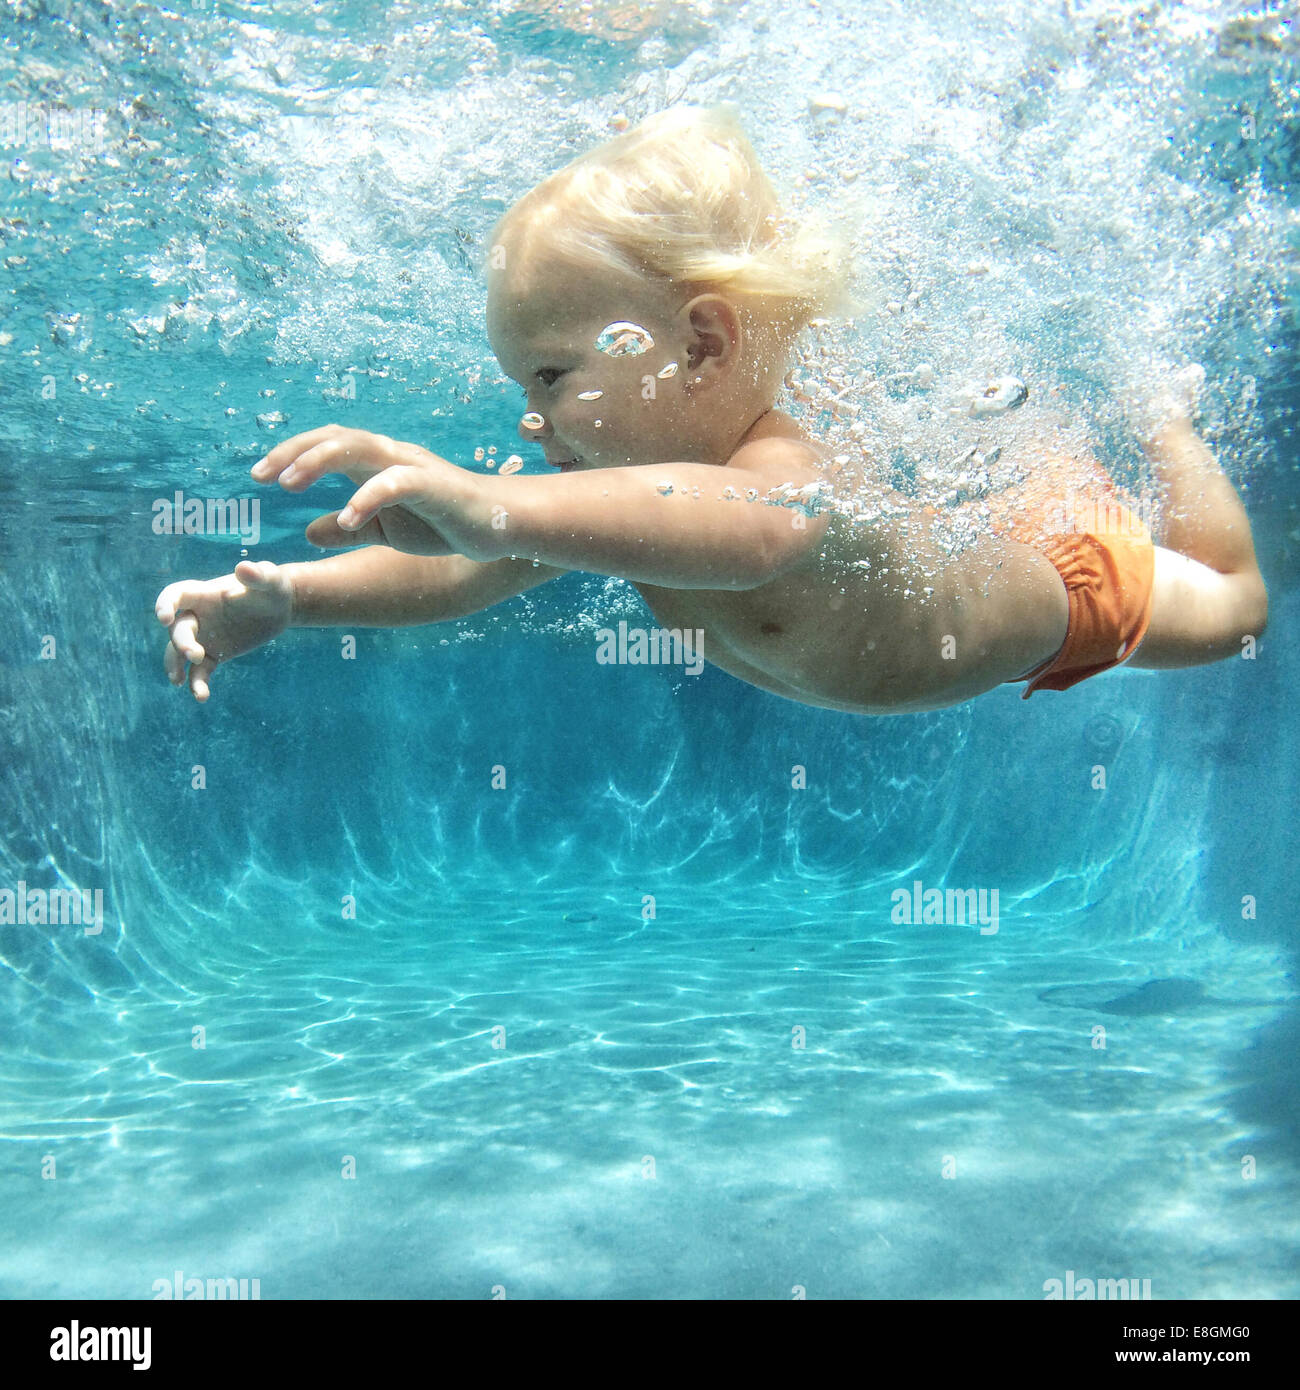 Boy swimming underwater - Stock Image